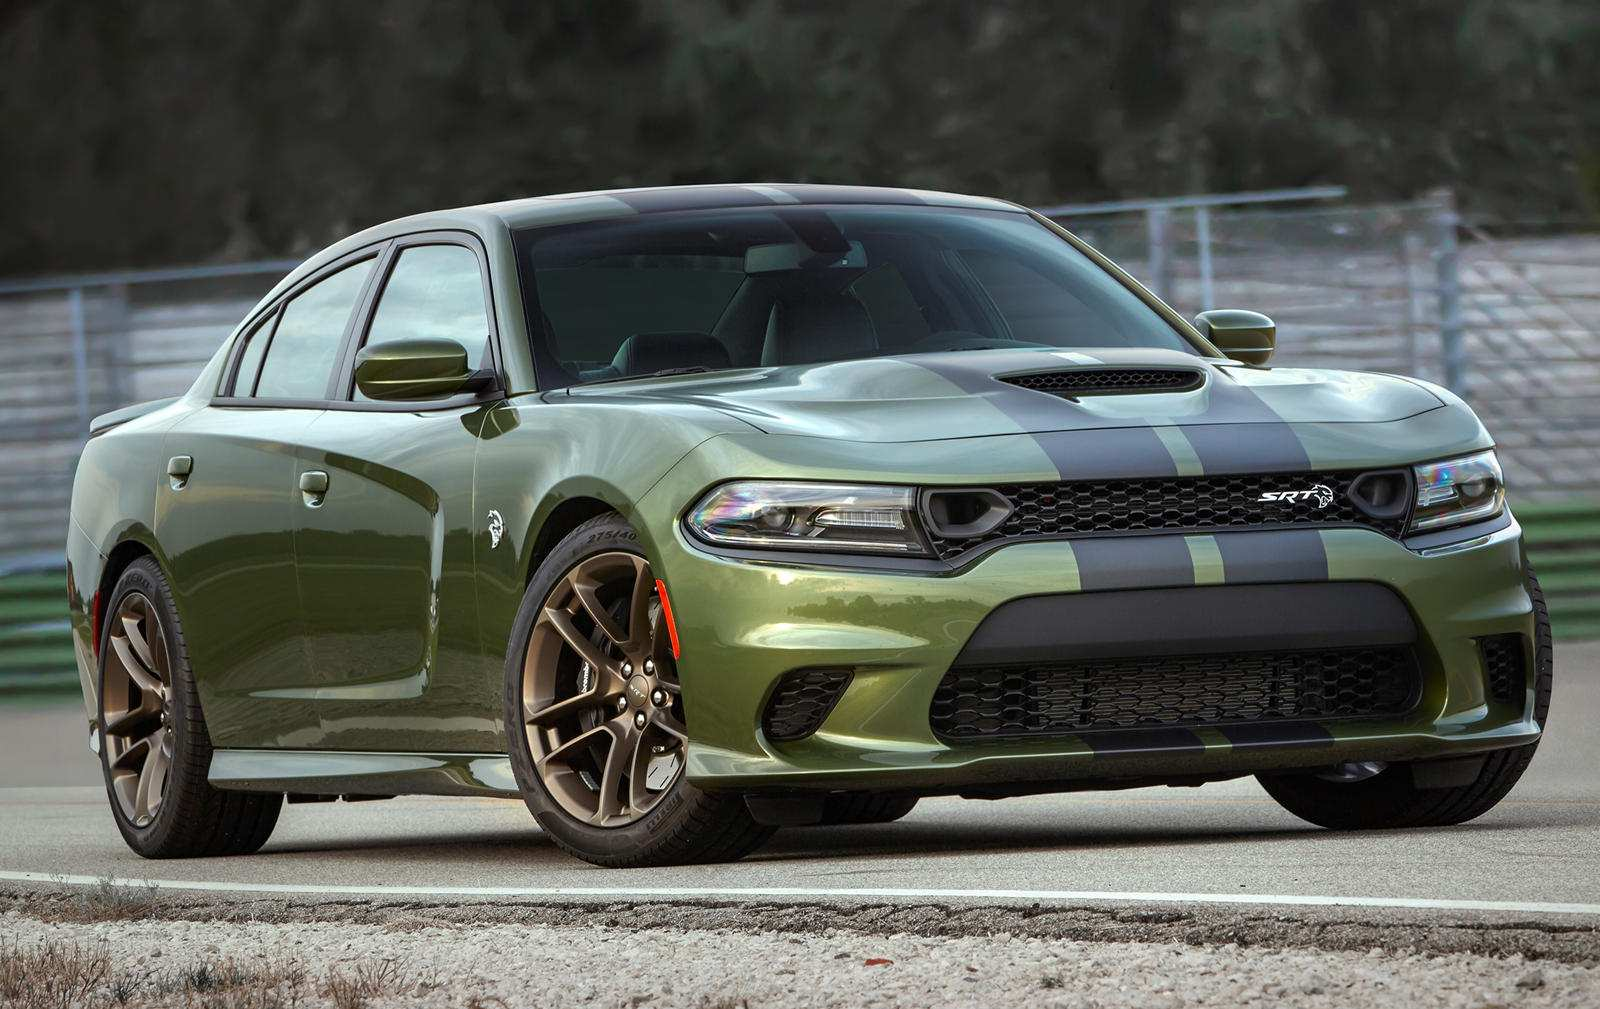 93 All New Pictures Of 2020 Dodge Charger Speed Test